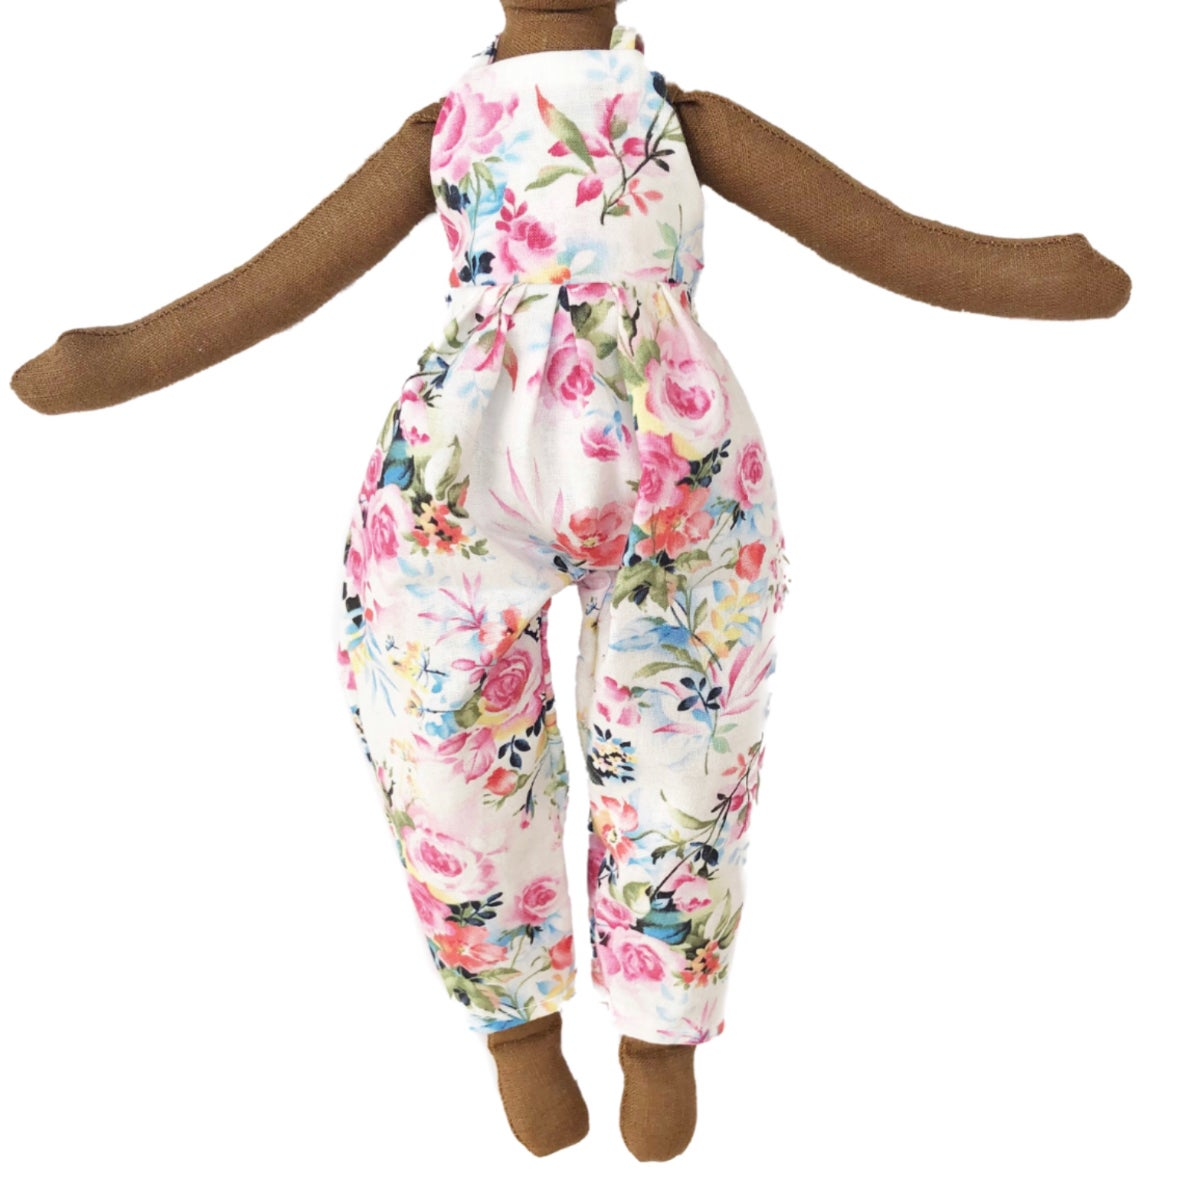 Image of Pink Floral jumper - Doll Accessory